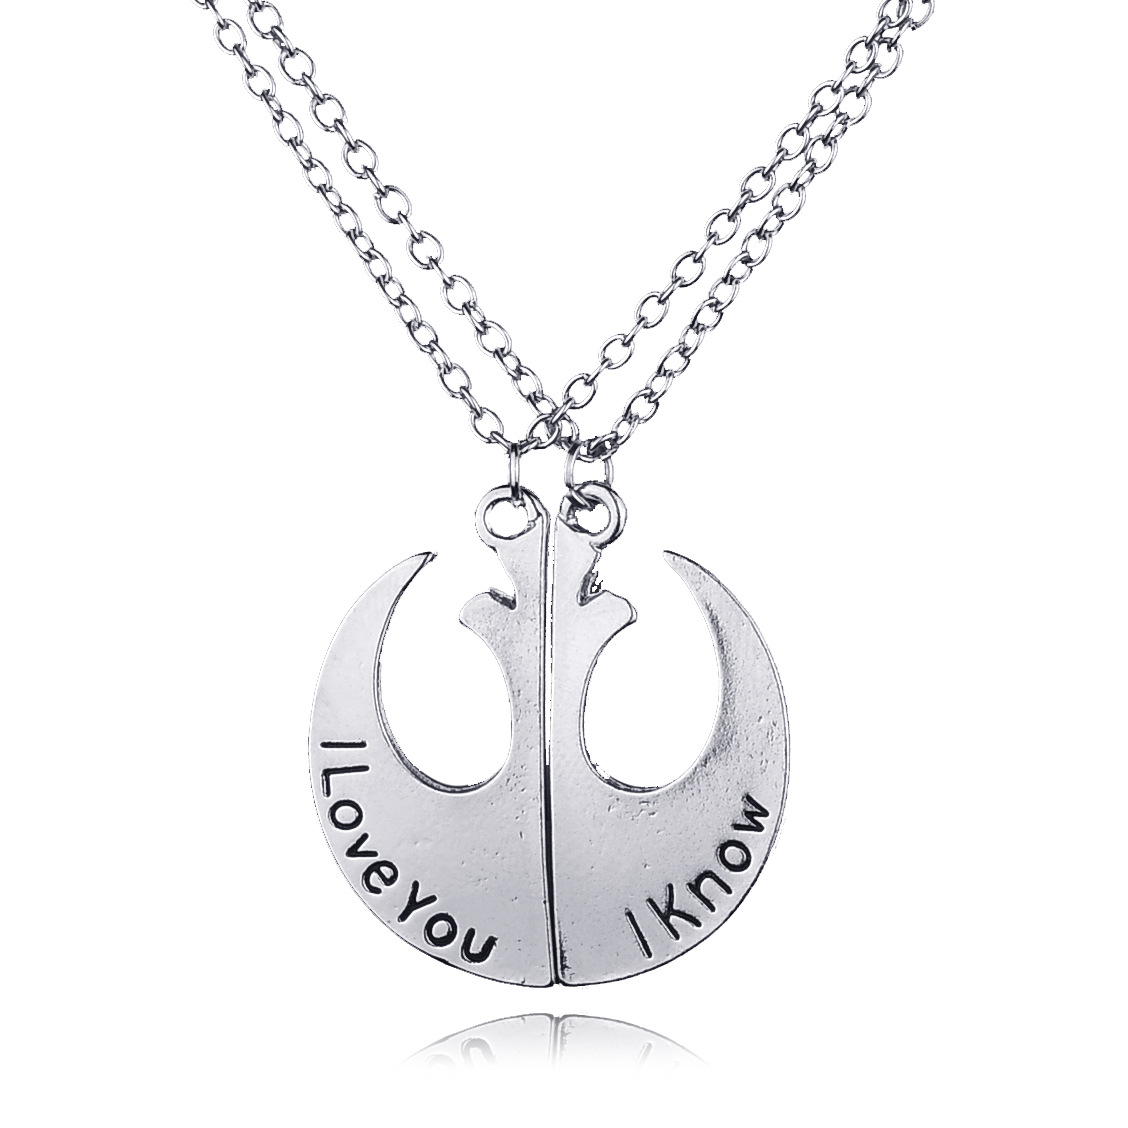 Star Wars Rebel Alliance Lapel Pin Rebel Badge Emblem Pendant I Love You I Know Lover's Couple Necklace Movie Jewelry(China (Mainland))